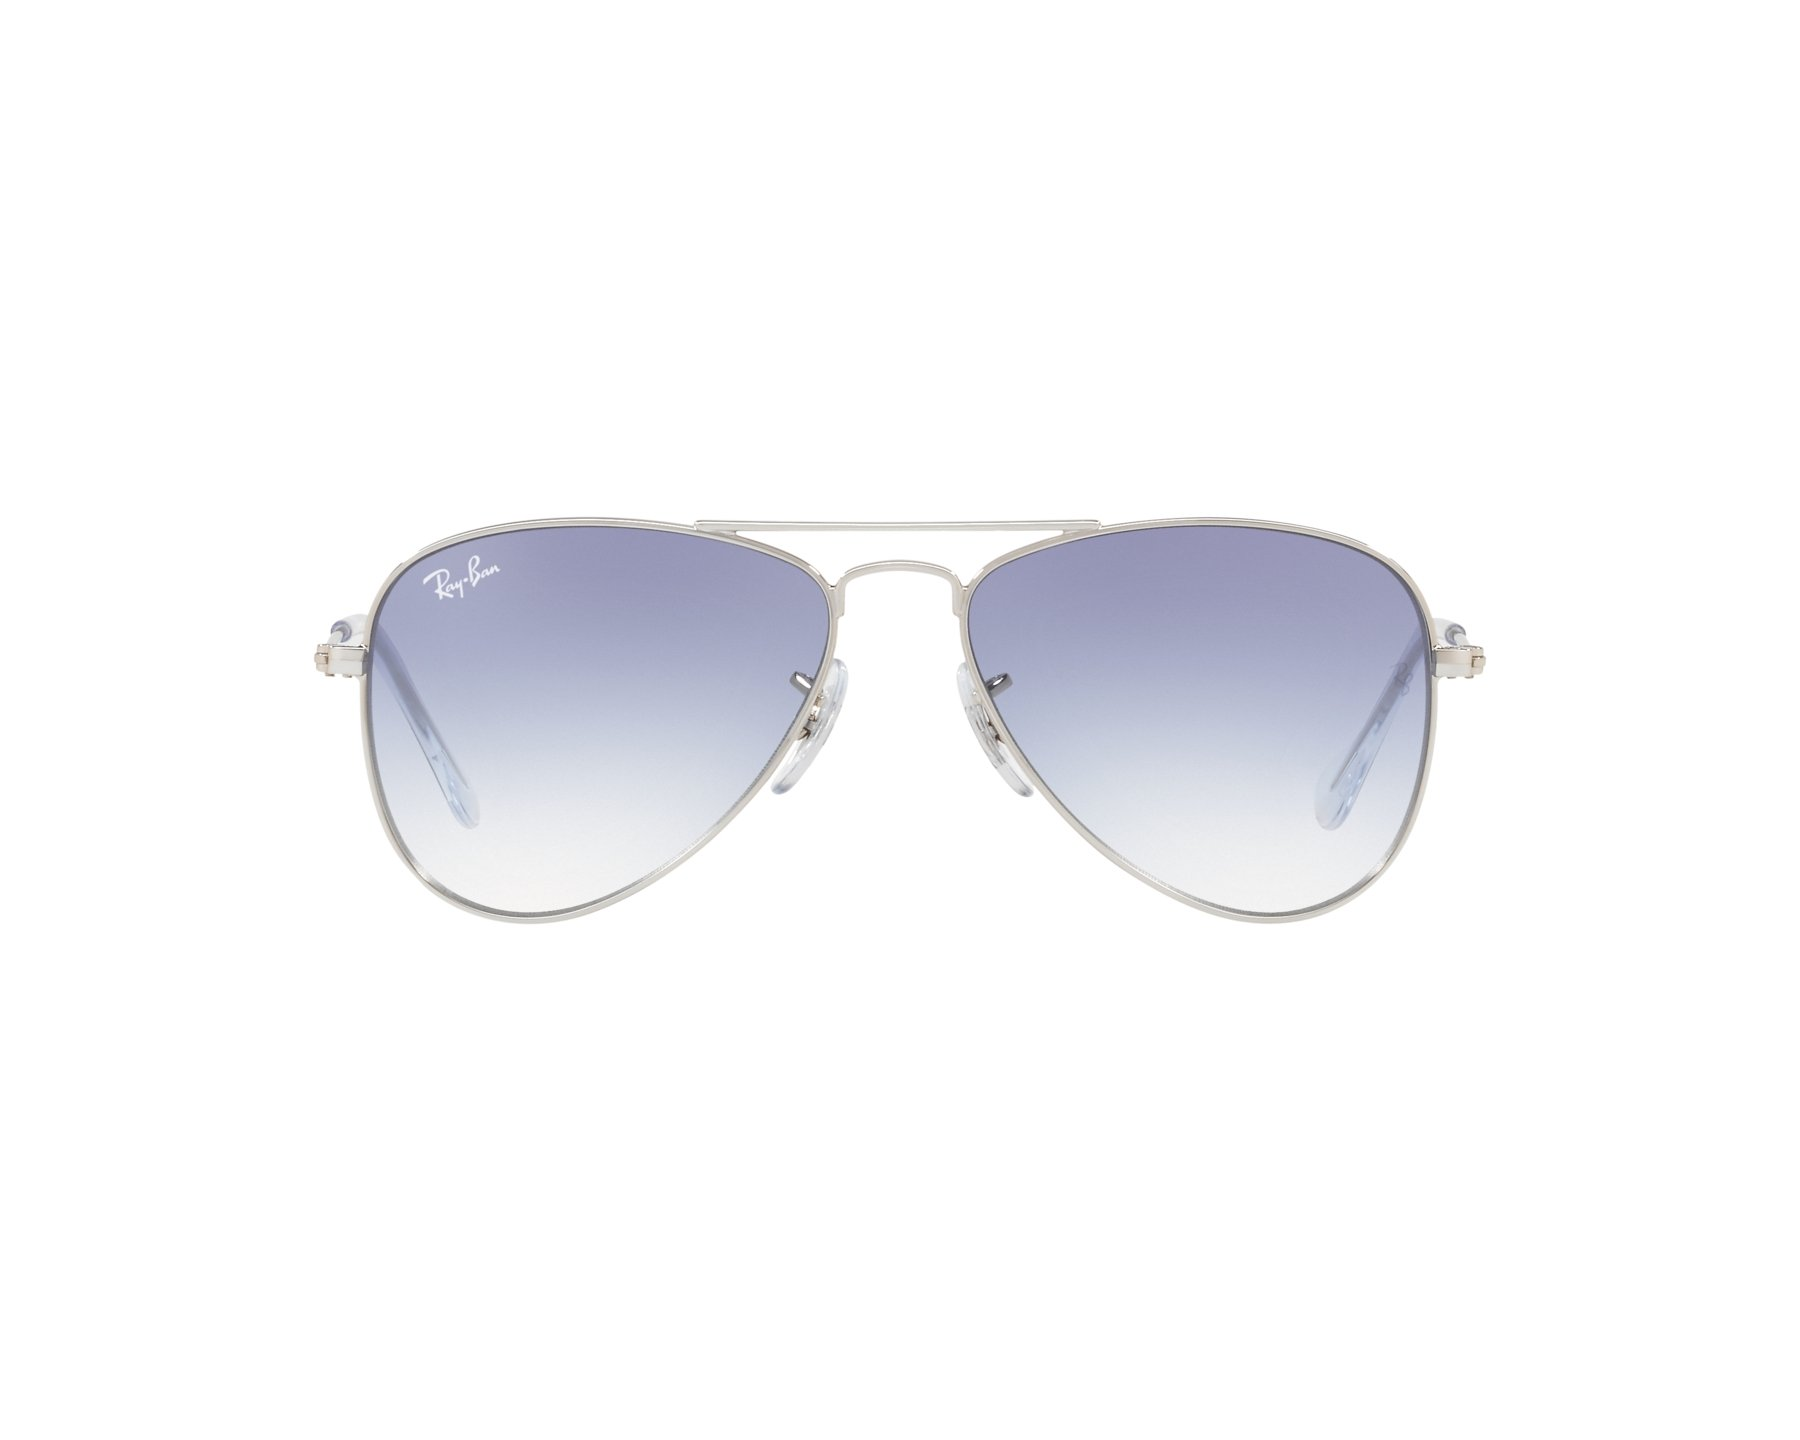 ce1f1ccd72 Sunglasses Ray-Ban RJ-9506-S 212 19 - Silver 360 degree